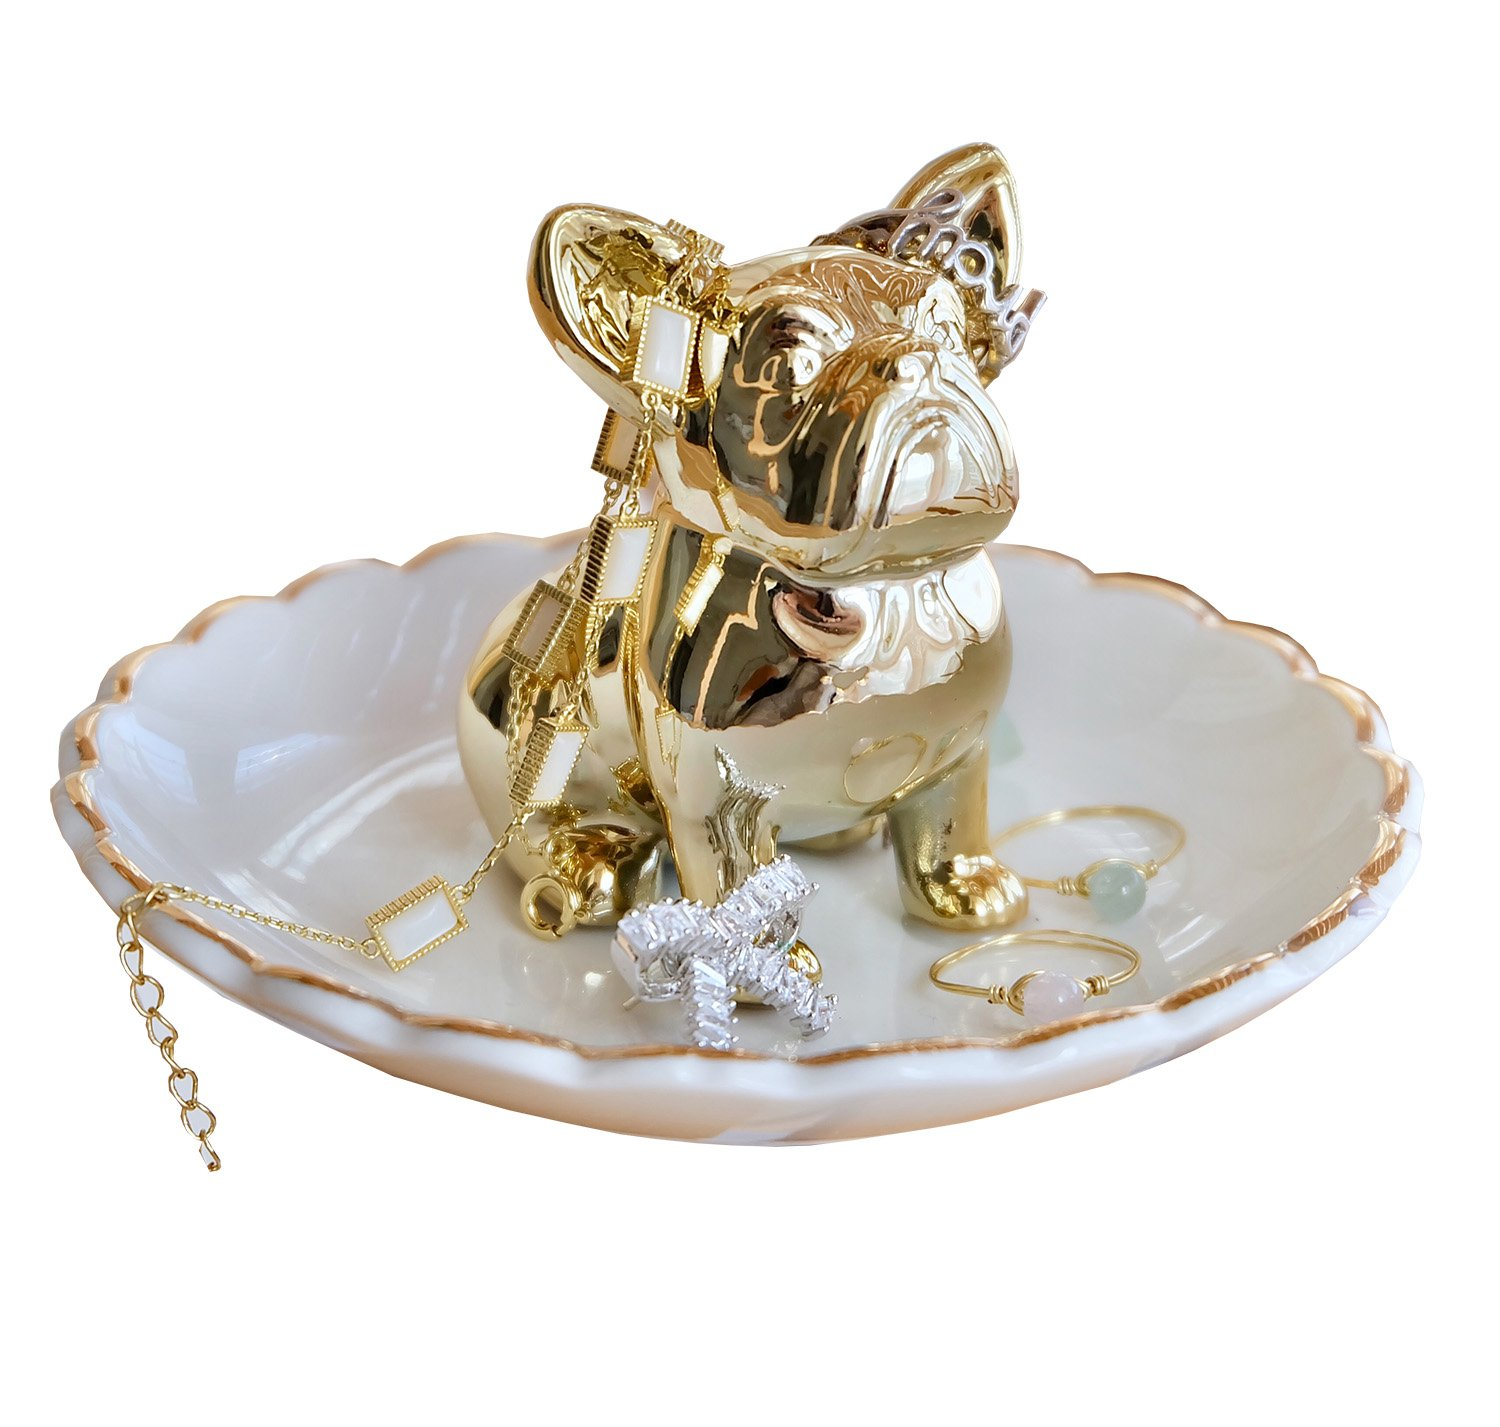 Bulldog Gold Jewelry Tray Ring Holder Trinket Dish For Engagement Wedding Rings Necklace Bracelet Organizer